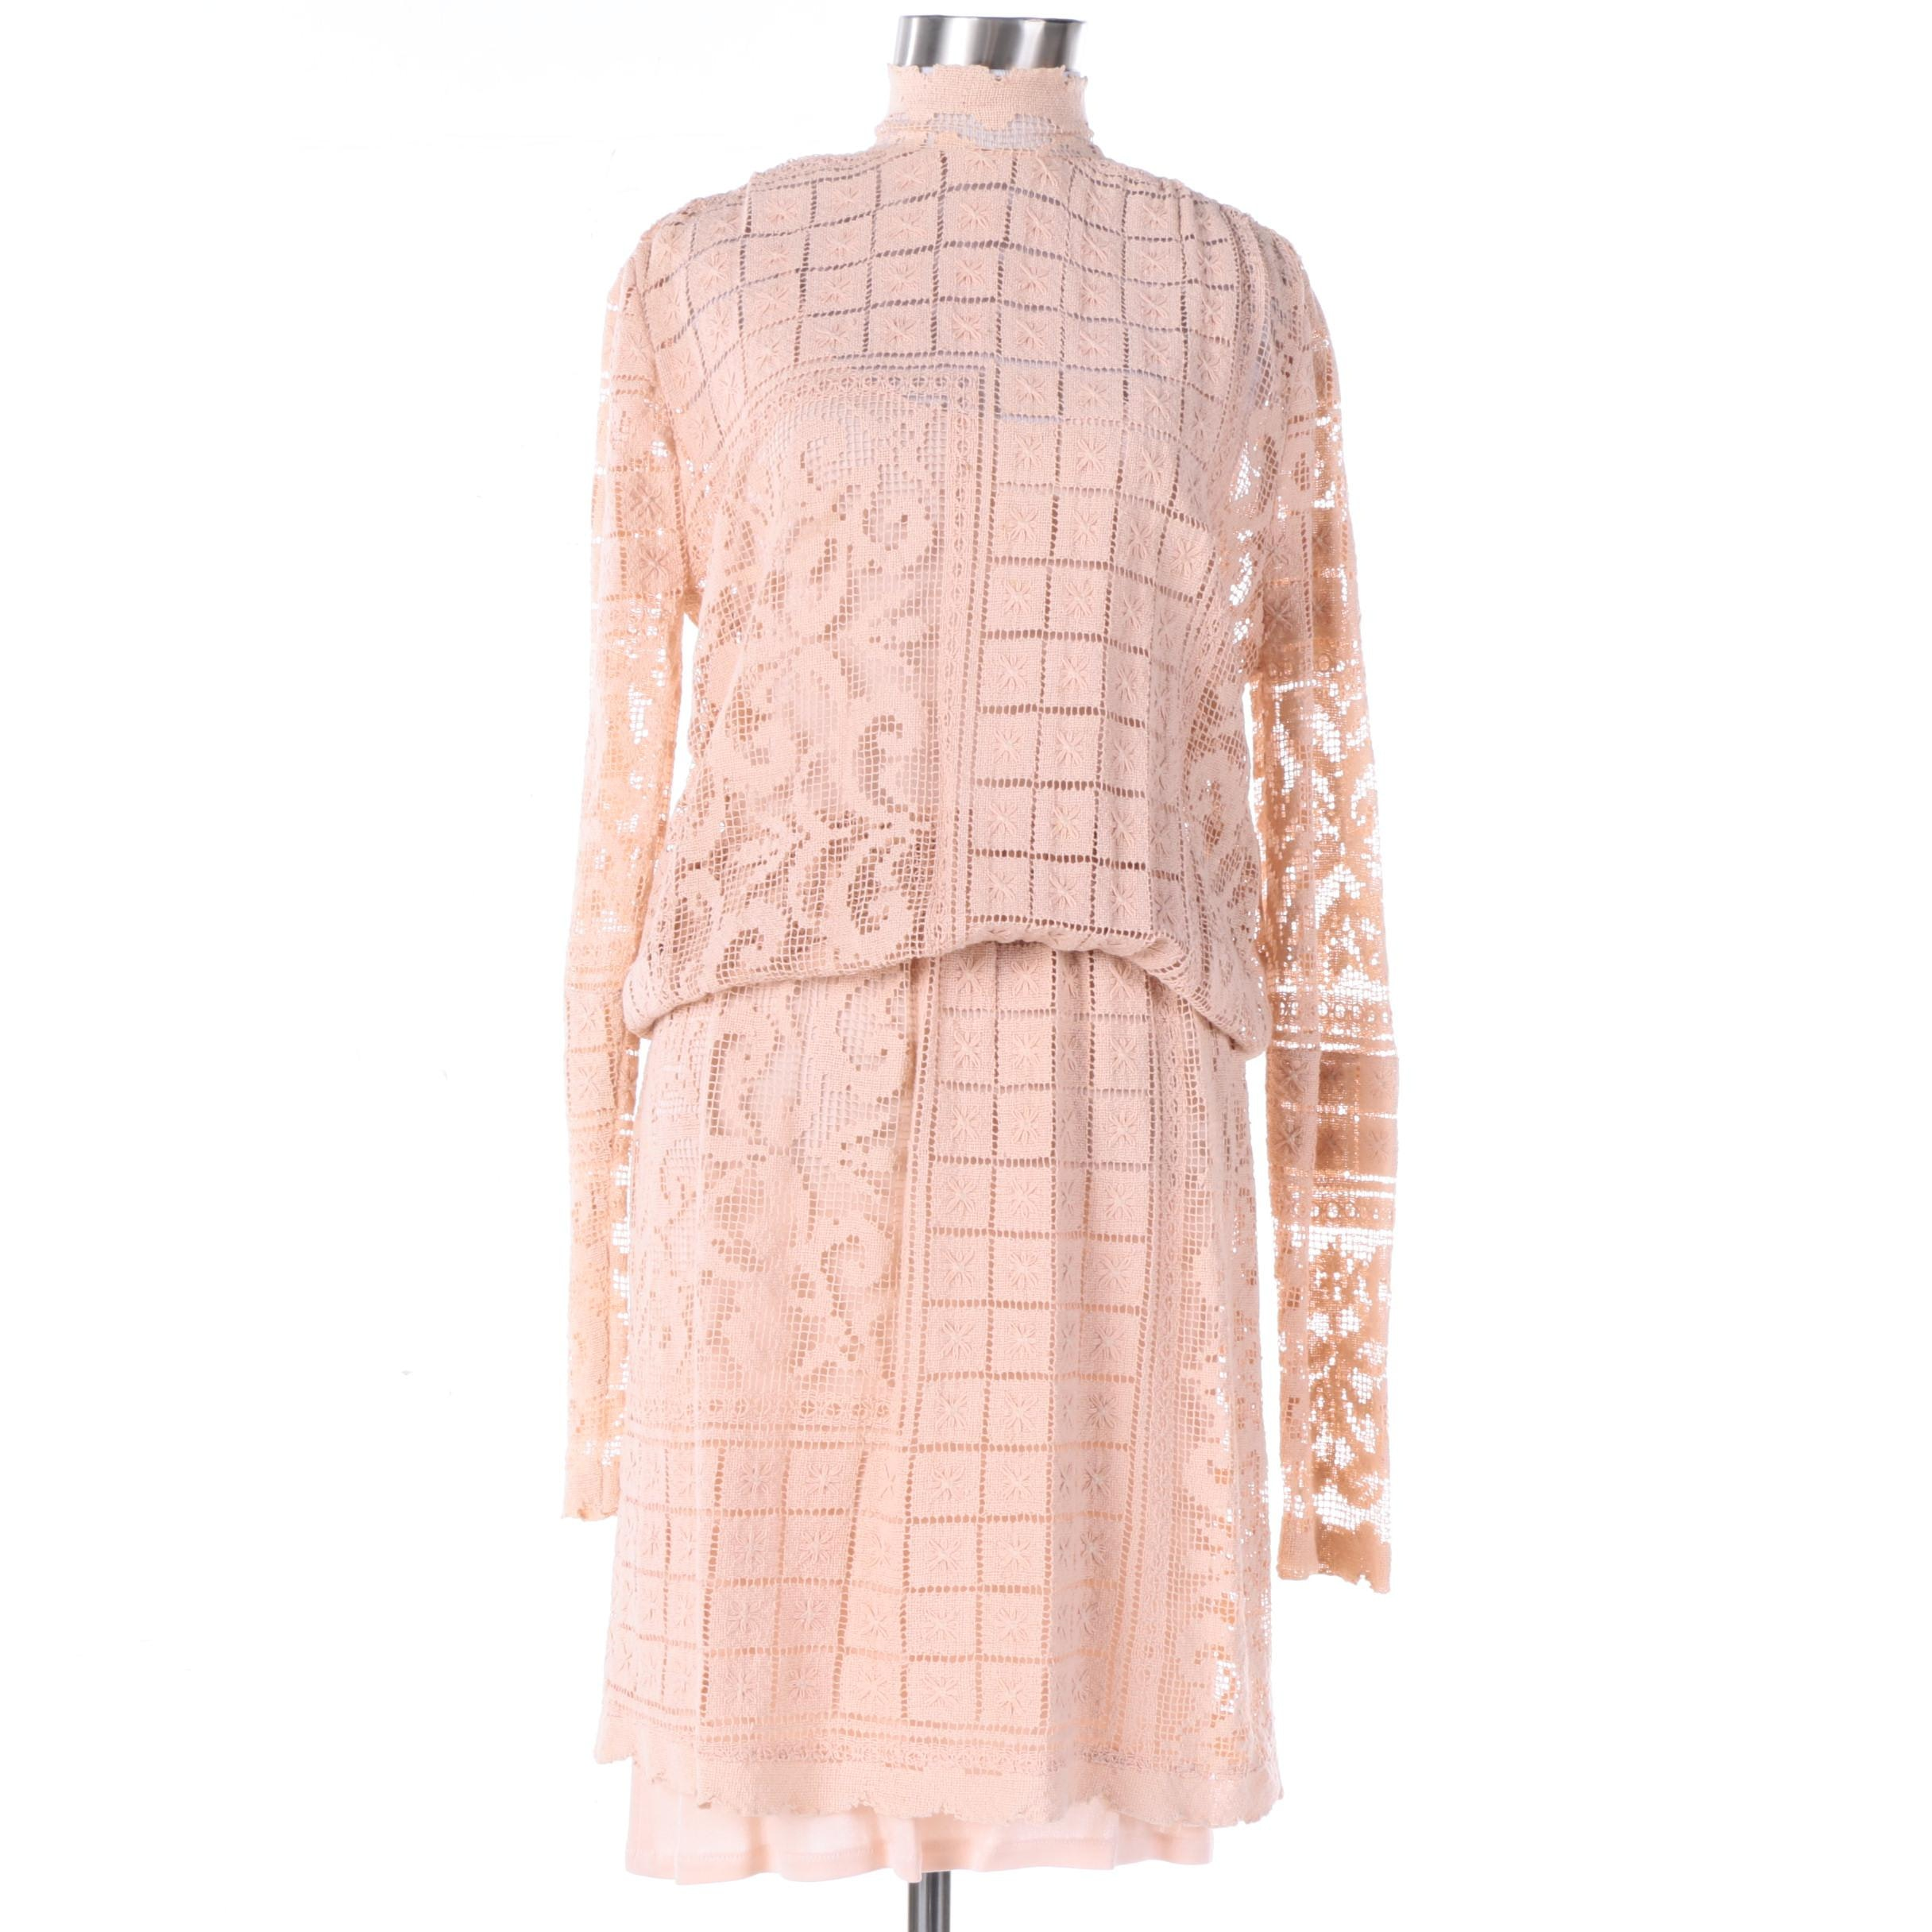 Vintage Becky Bisoulis Peach Knit Two-Piece Dress